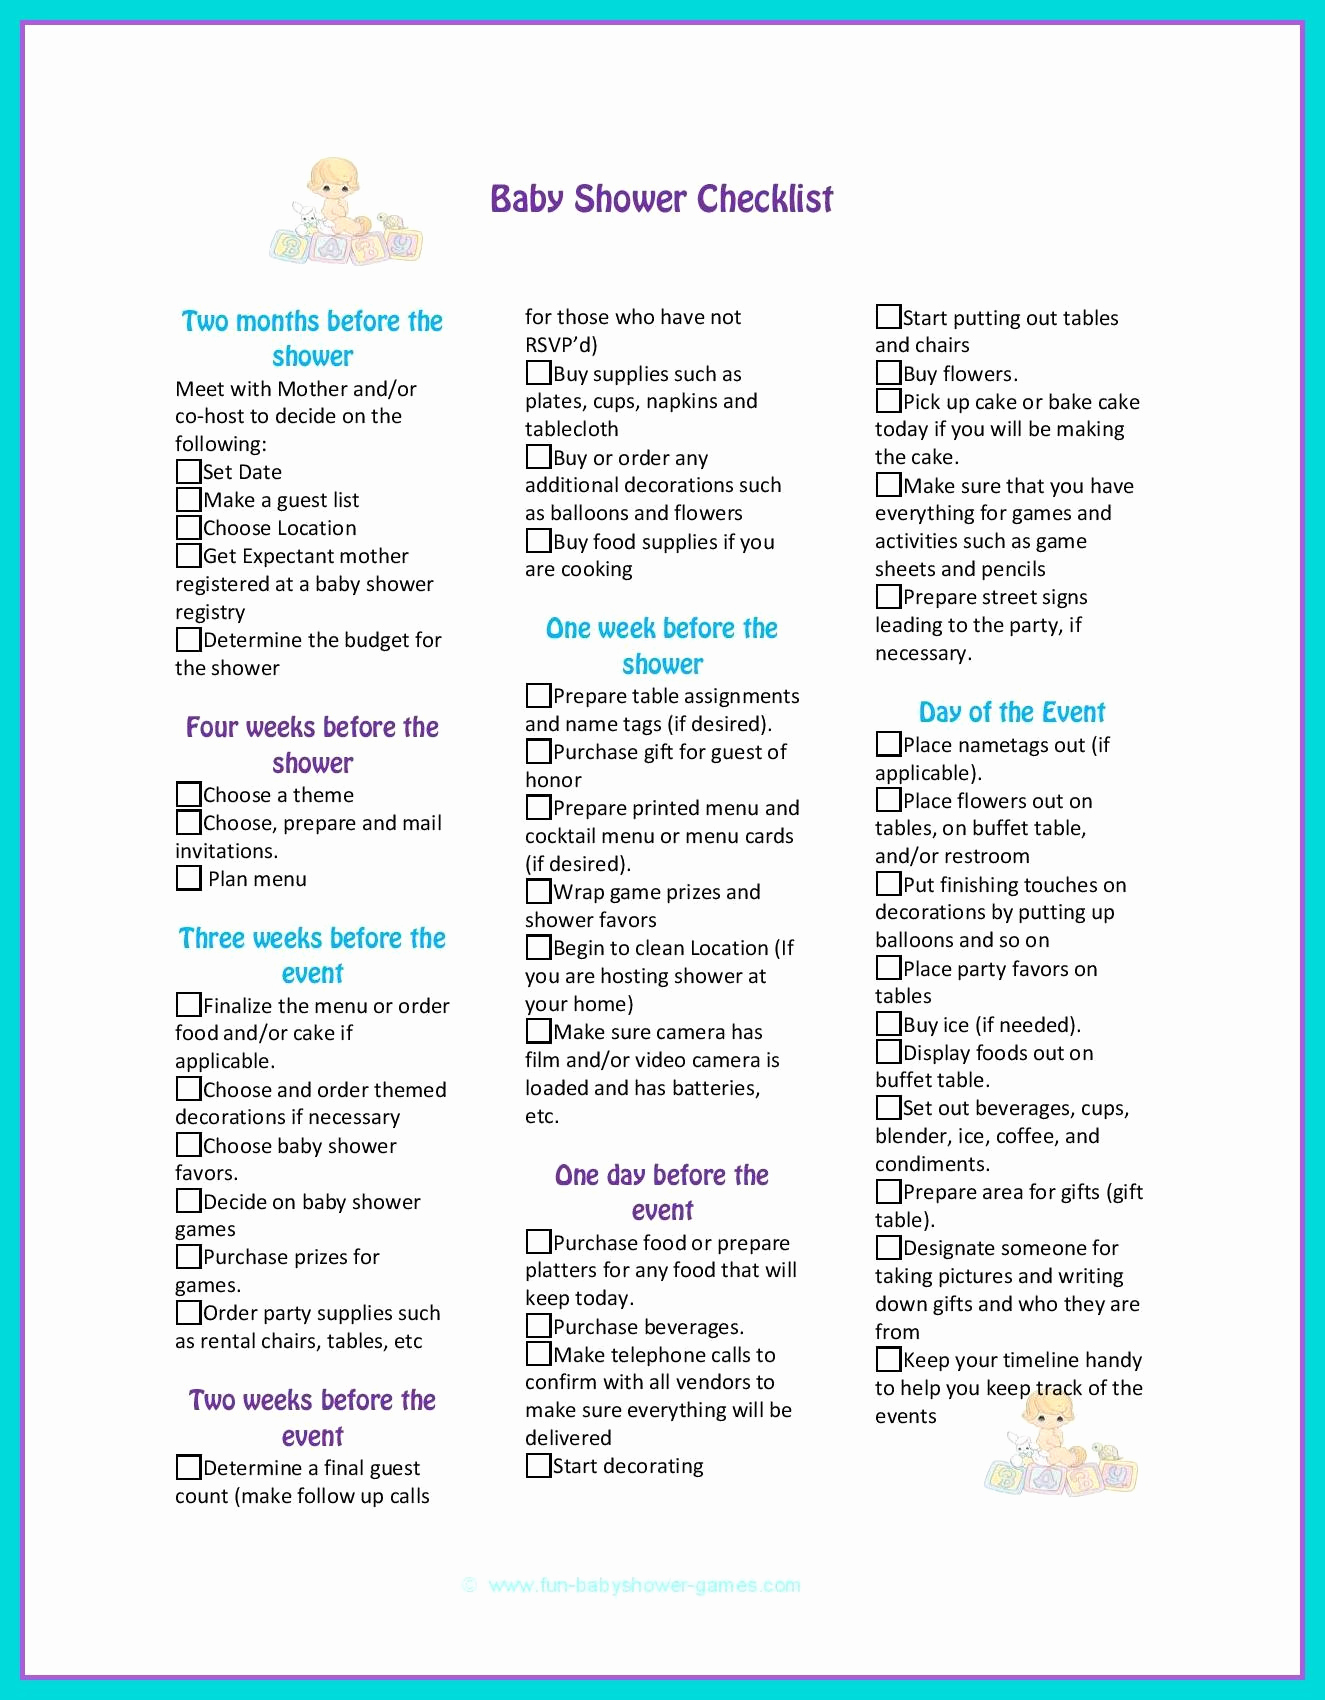 Baby Shower Planning Check List Awesome Baby Shower Checklist to Help Plan the Perfect Baby Shower